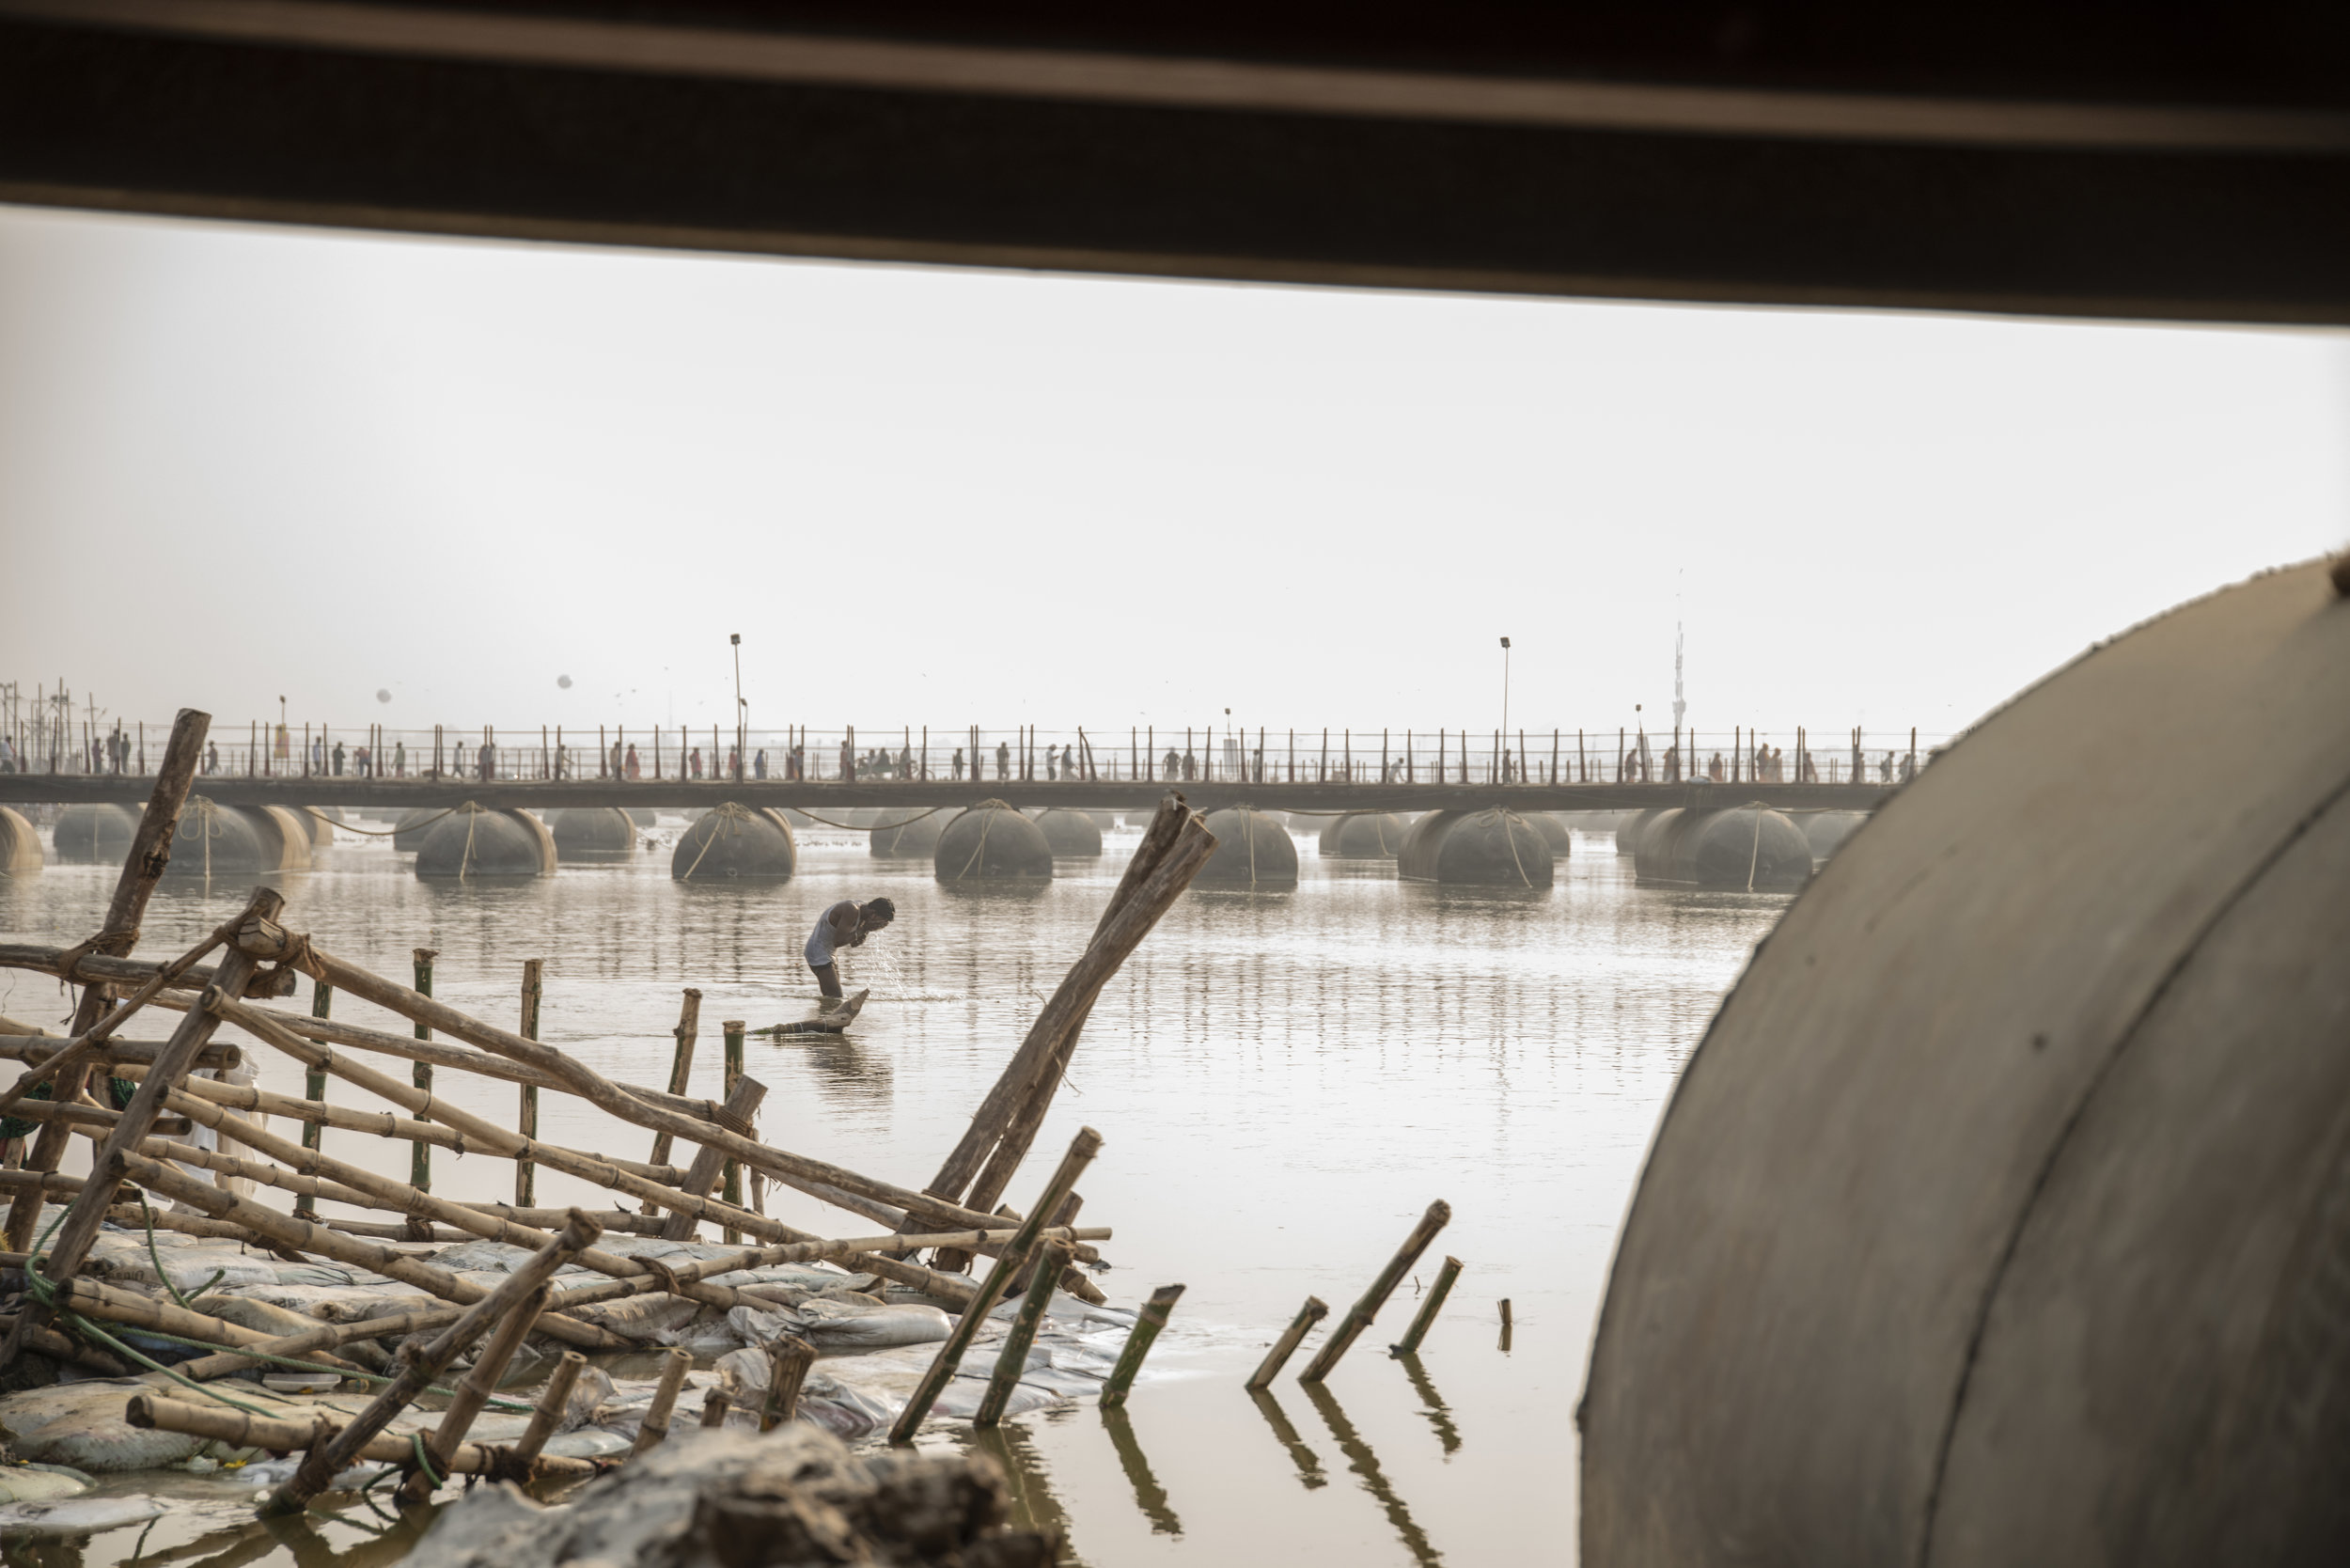 Man bathes in the Ganges between two of the temporary bridges built to allow passage to and from the mela.